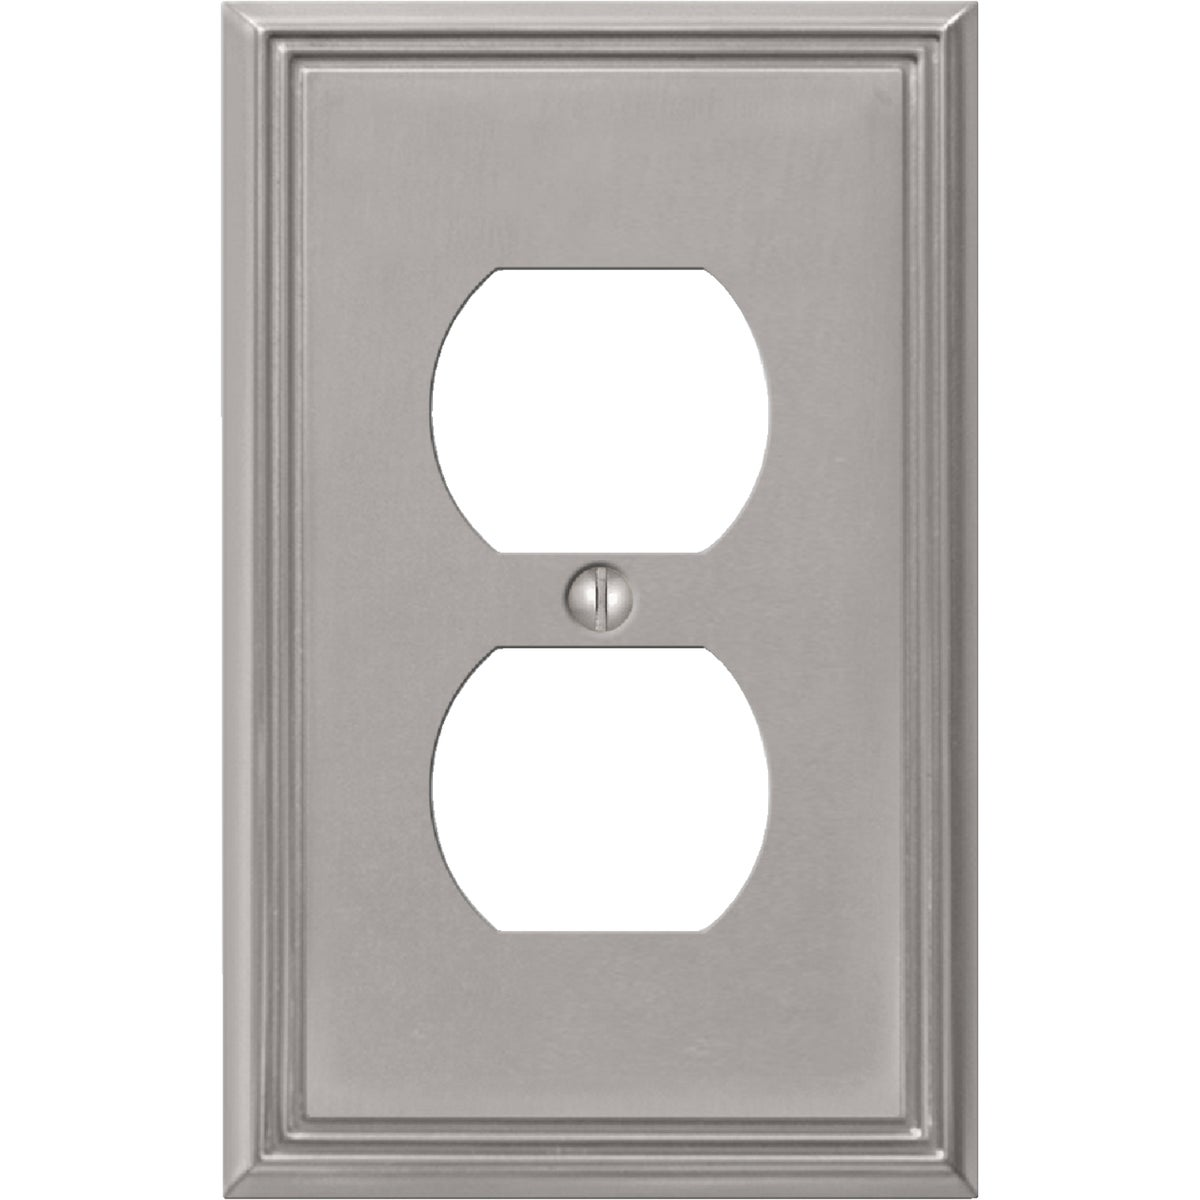 BN OUTLET WALLPLATE - 3108BN by Jackson Deerfield Mf